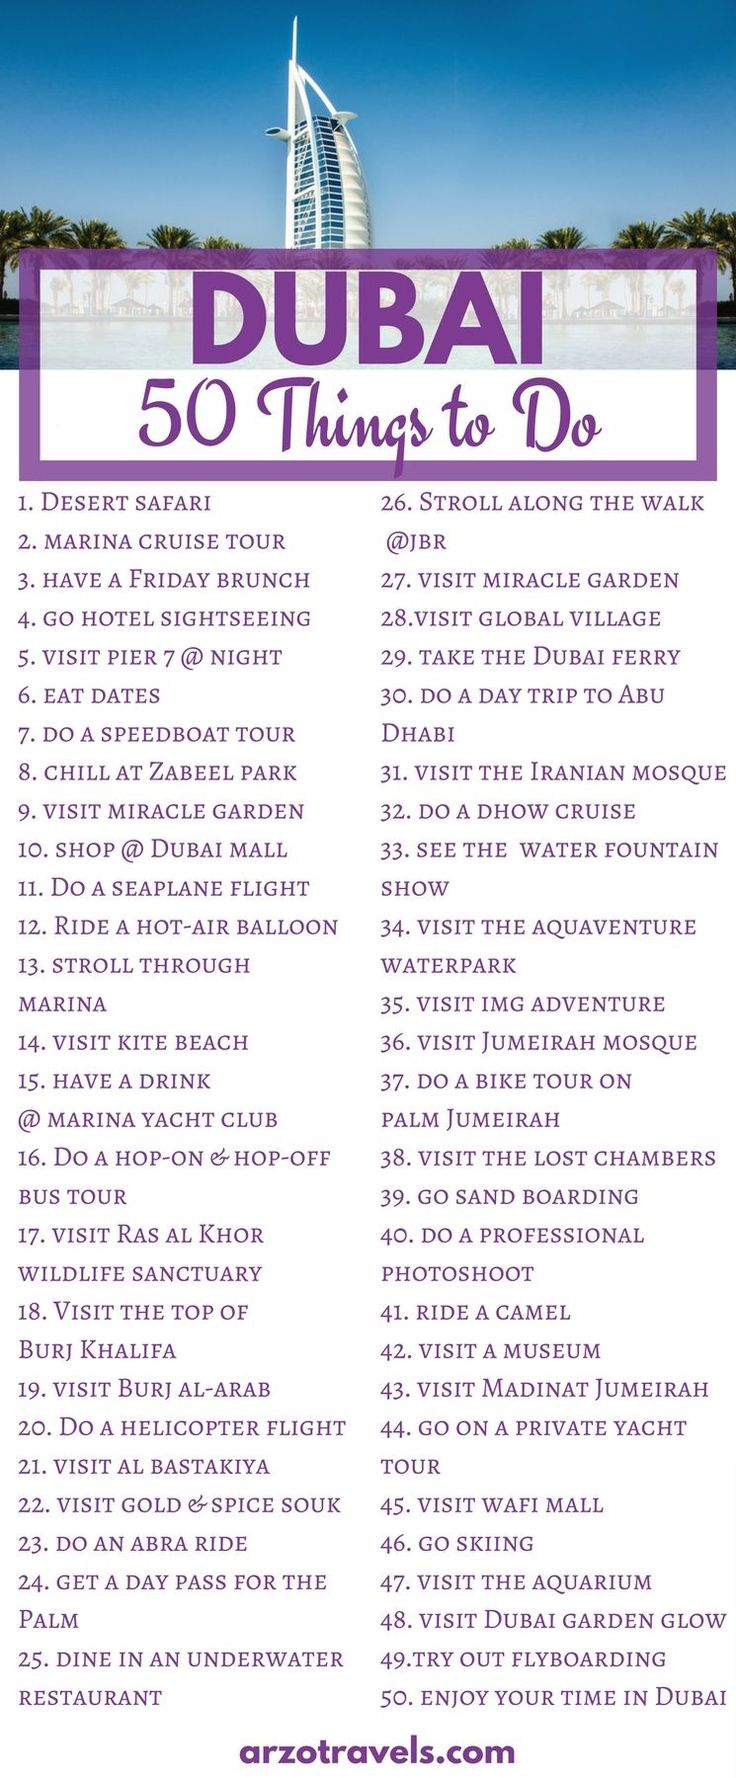 50 fun things to do in Dubai. Find ideas for activities- there are some great free activities as well as some for the luxurious travelers. United Arab Emirates, outdoor activities, top 50 things to experience in Dubai.